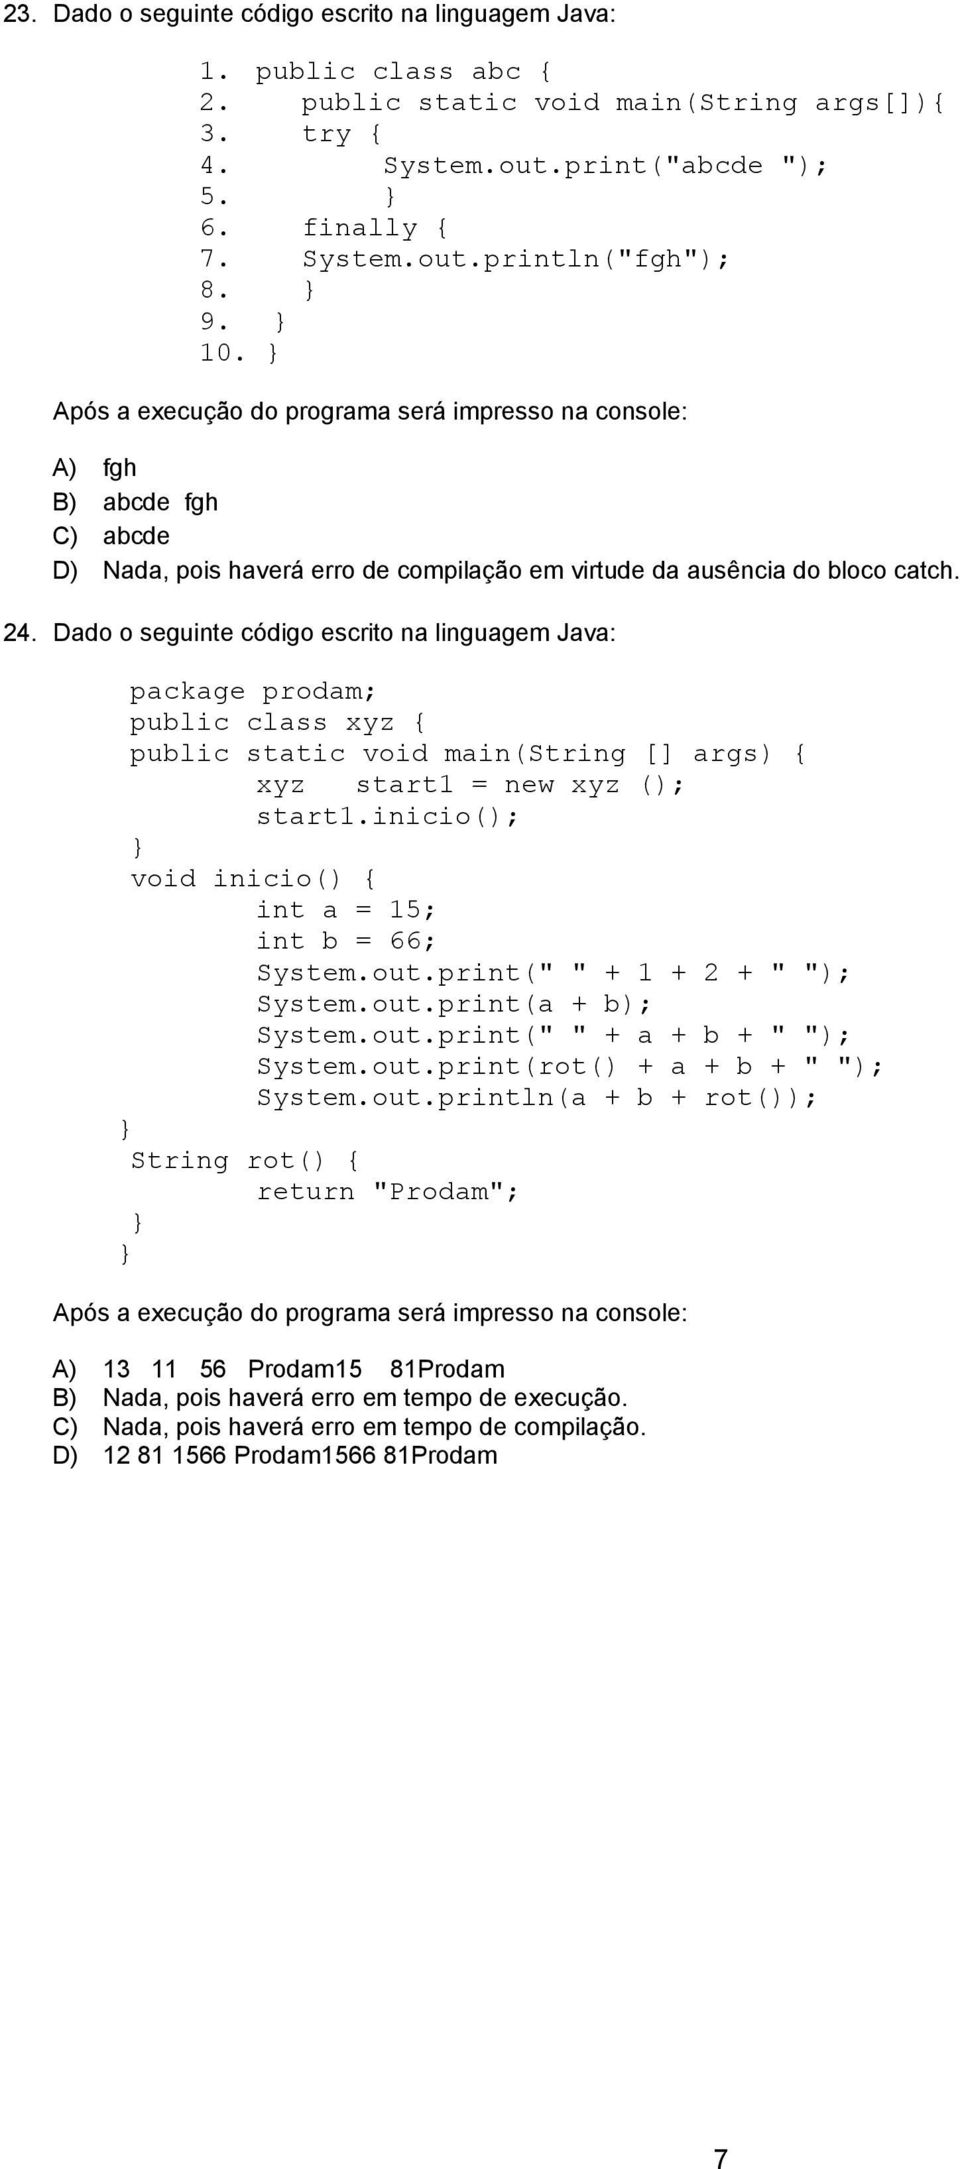 Dado o seguinte código escrito na linguagem Java: public class xyz public static void main(string [] args) xyz start1 = new xyz (); start1.inicio(); void inicio() int a = 15; int b = 66; System.out.